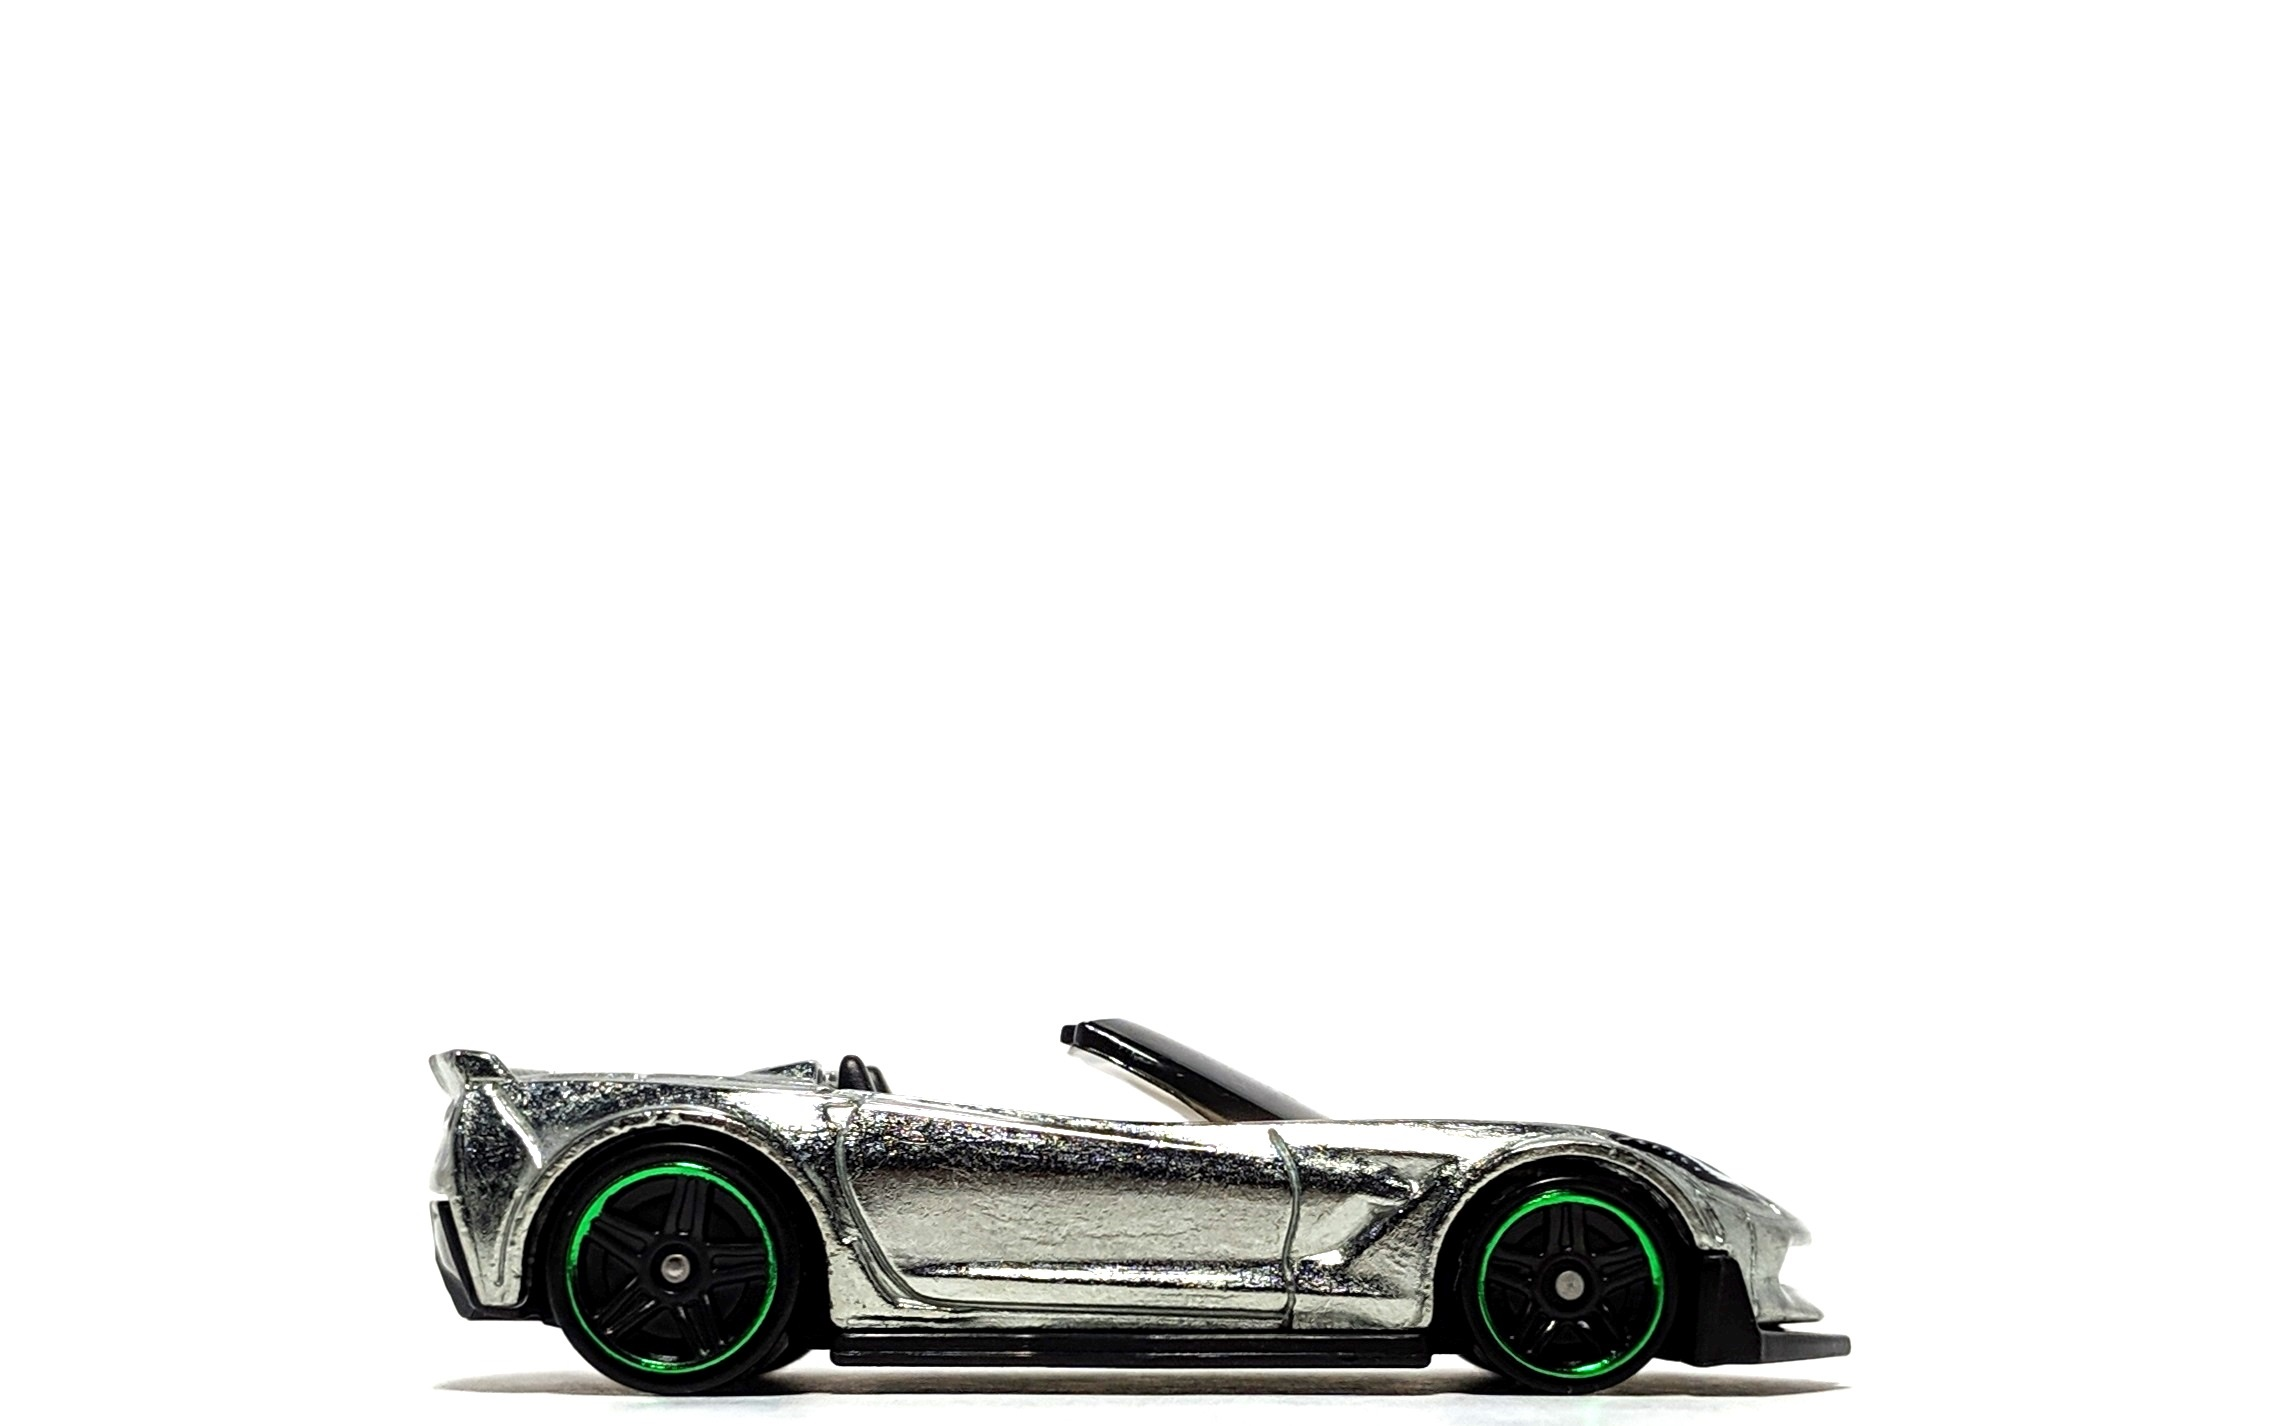 Corvette C7 Z06 Convertible (Zamac), by Hot Wheels (Walmart-exclusive)